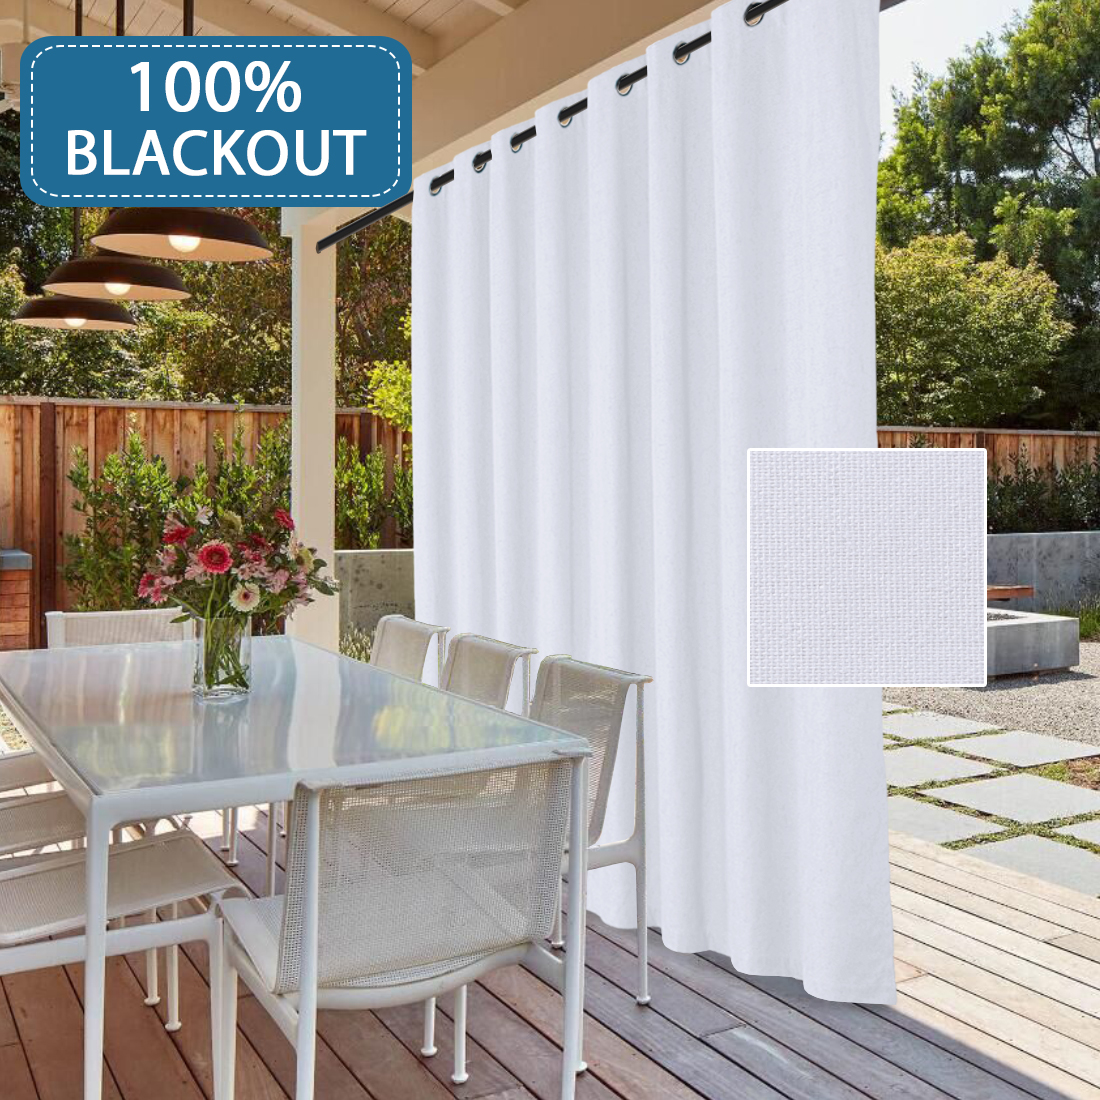 wide outdoor thermal 100 blackout patio white curtain panel waterproof sliding door curtains with anti rust grommet top decorative room divider